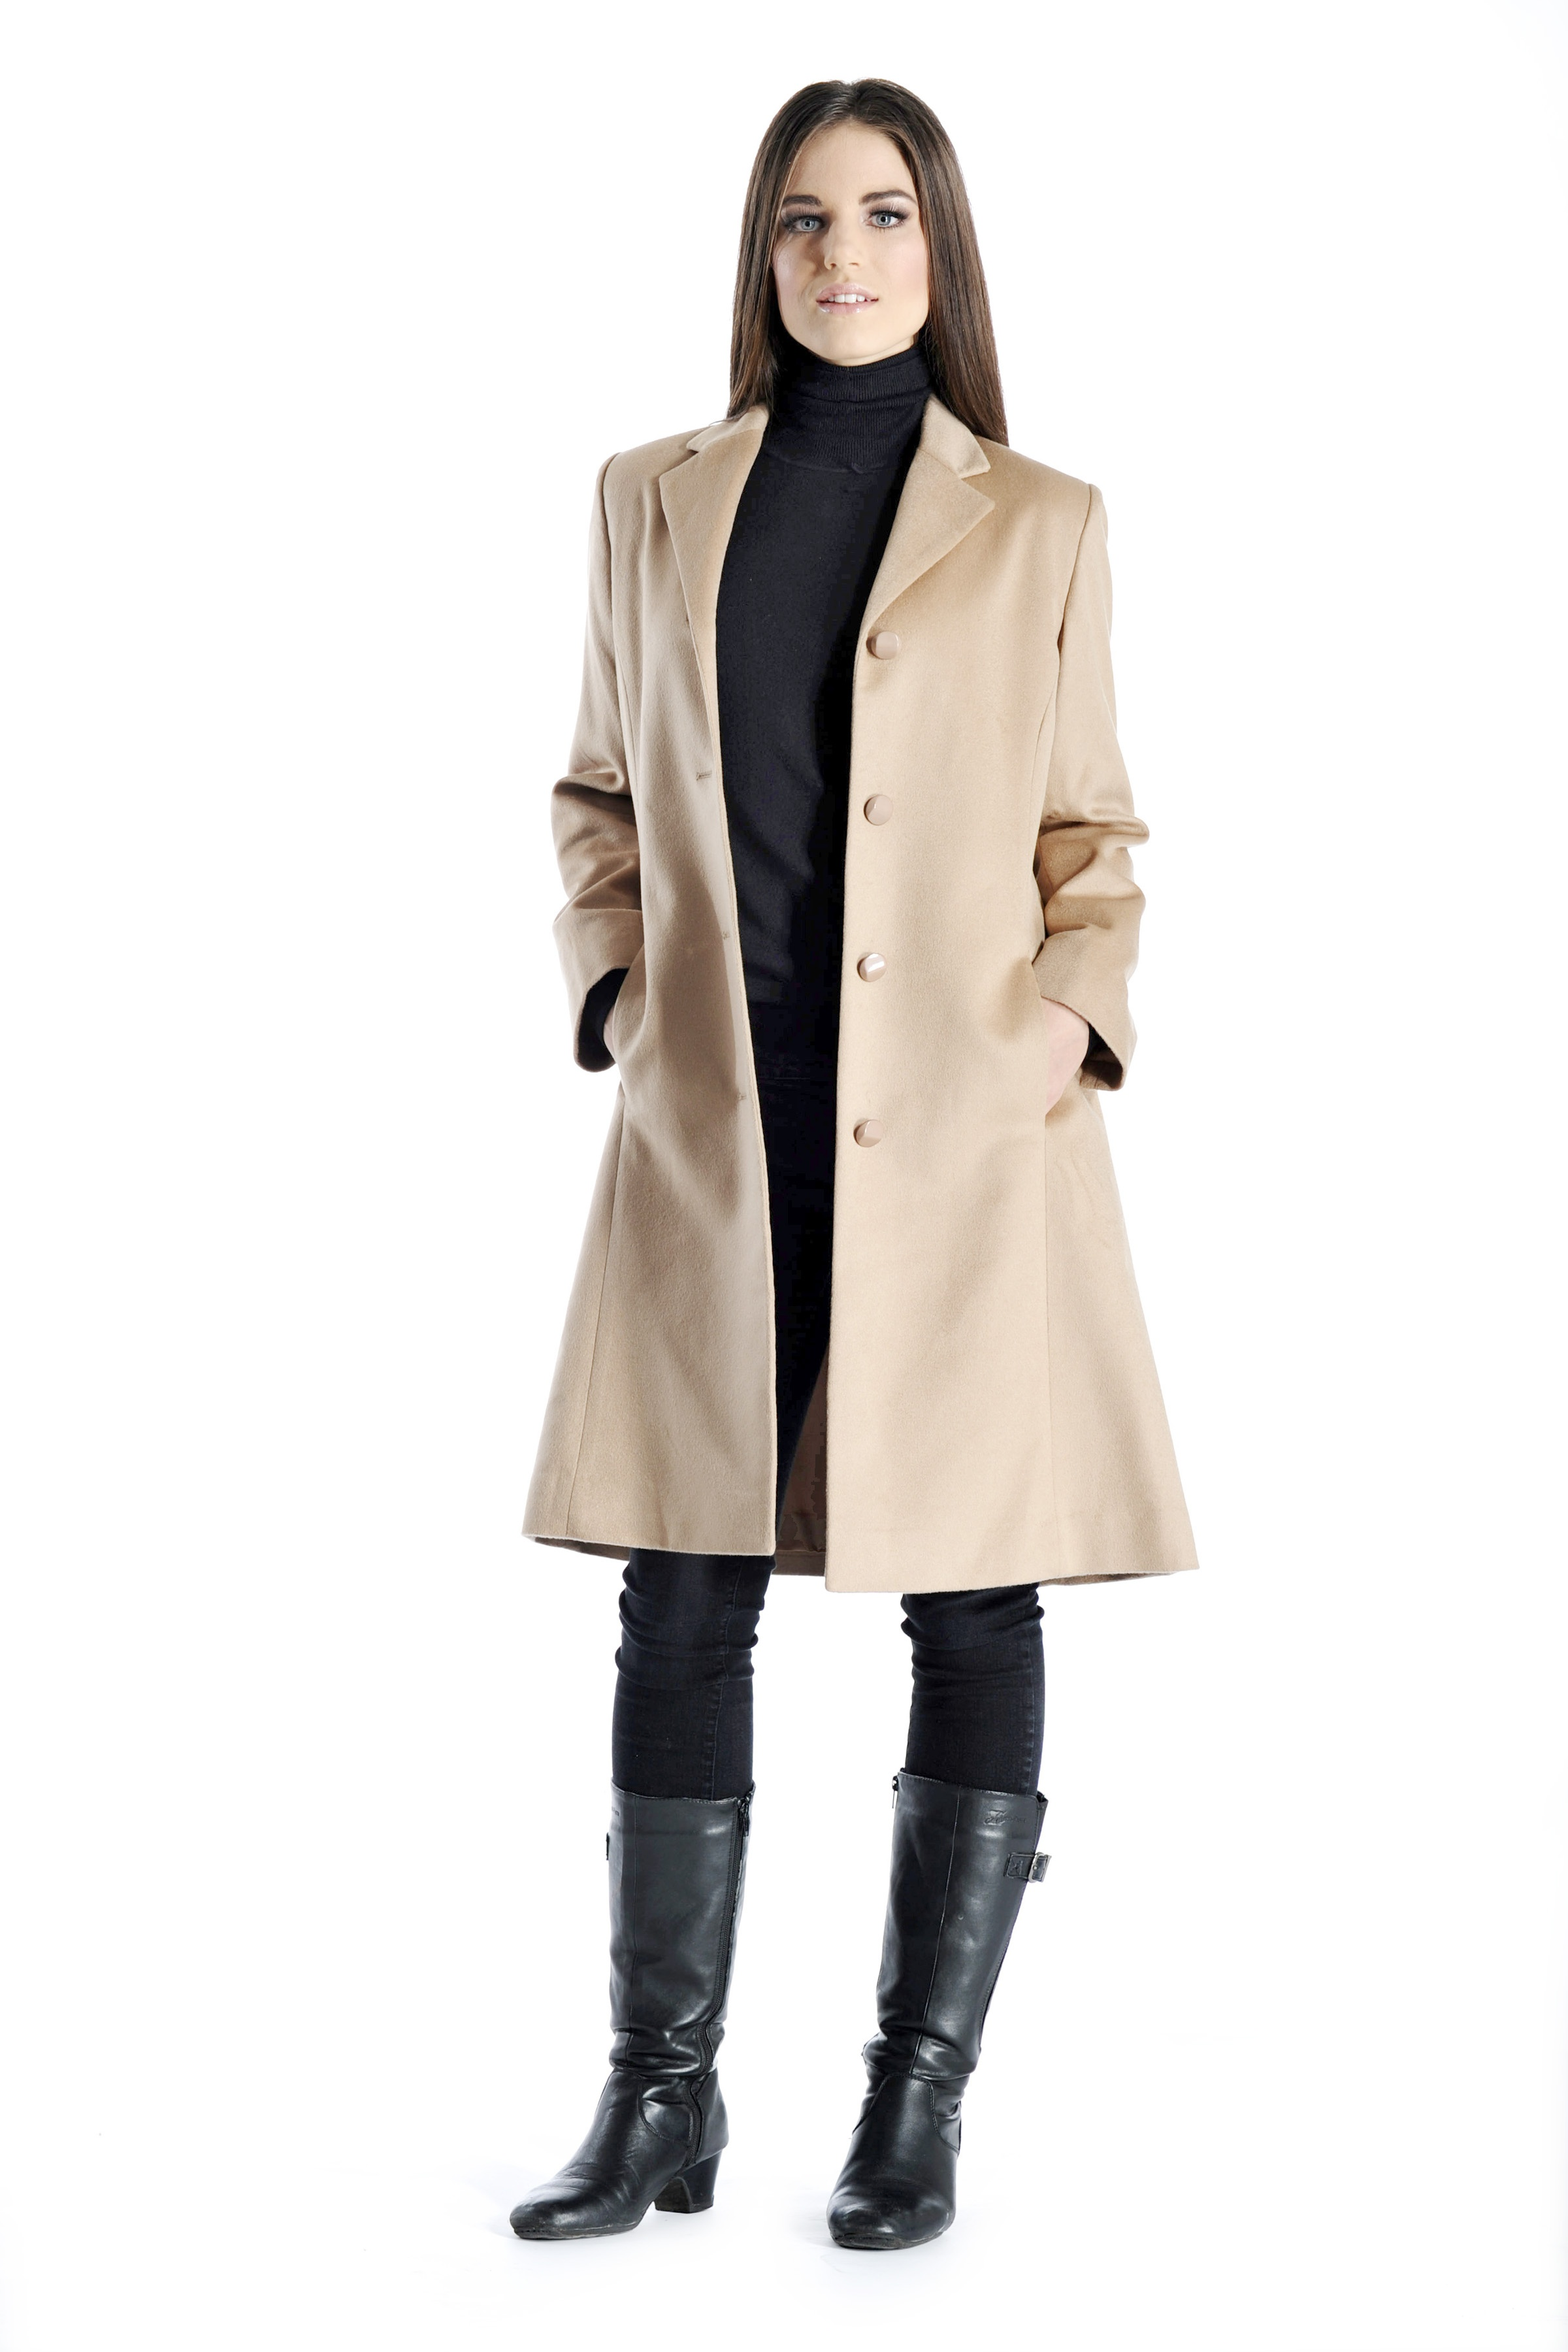 Cashmere Boutique Women's Knee Length Overcoat in Pure Cashmere at Sears.com